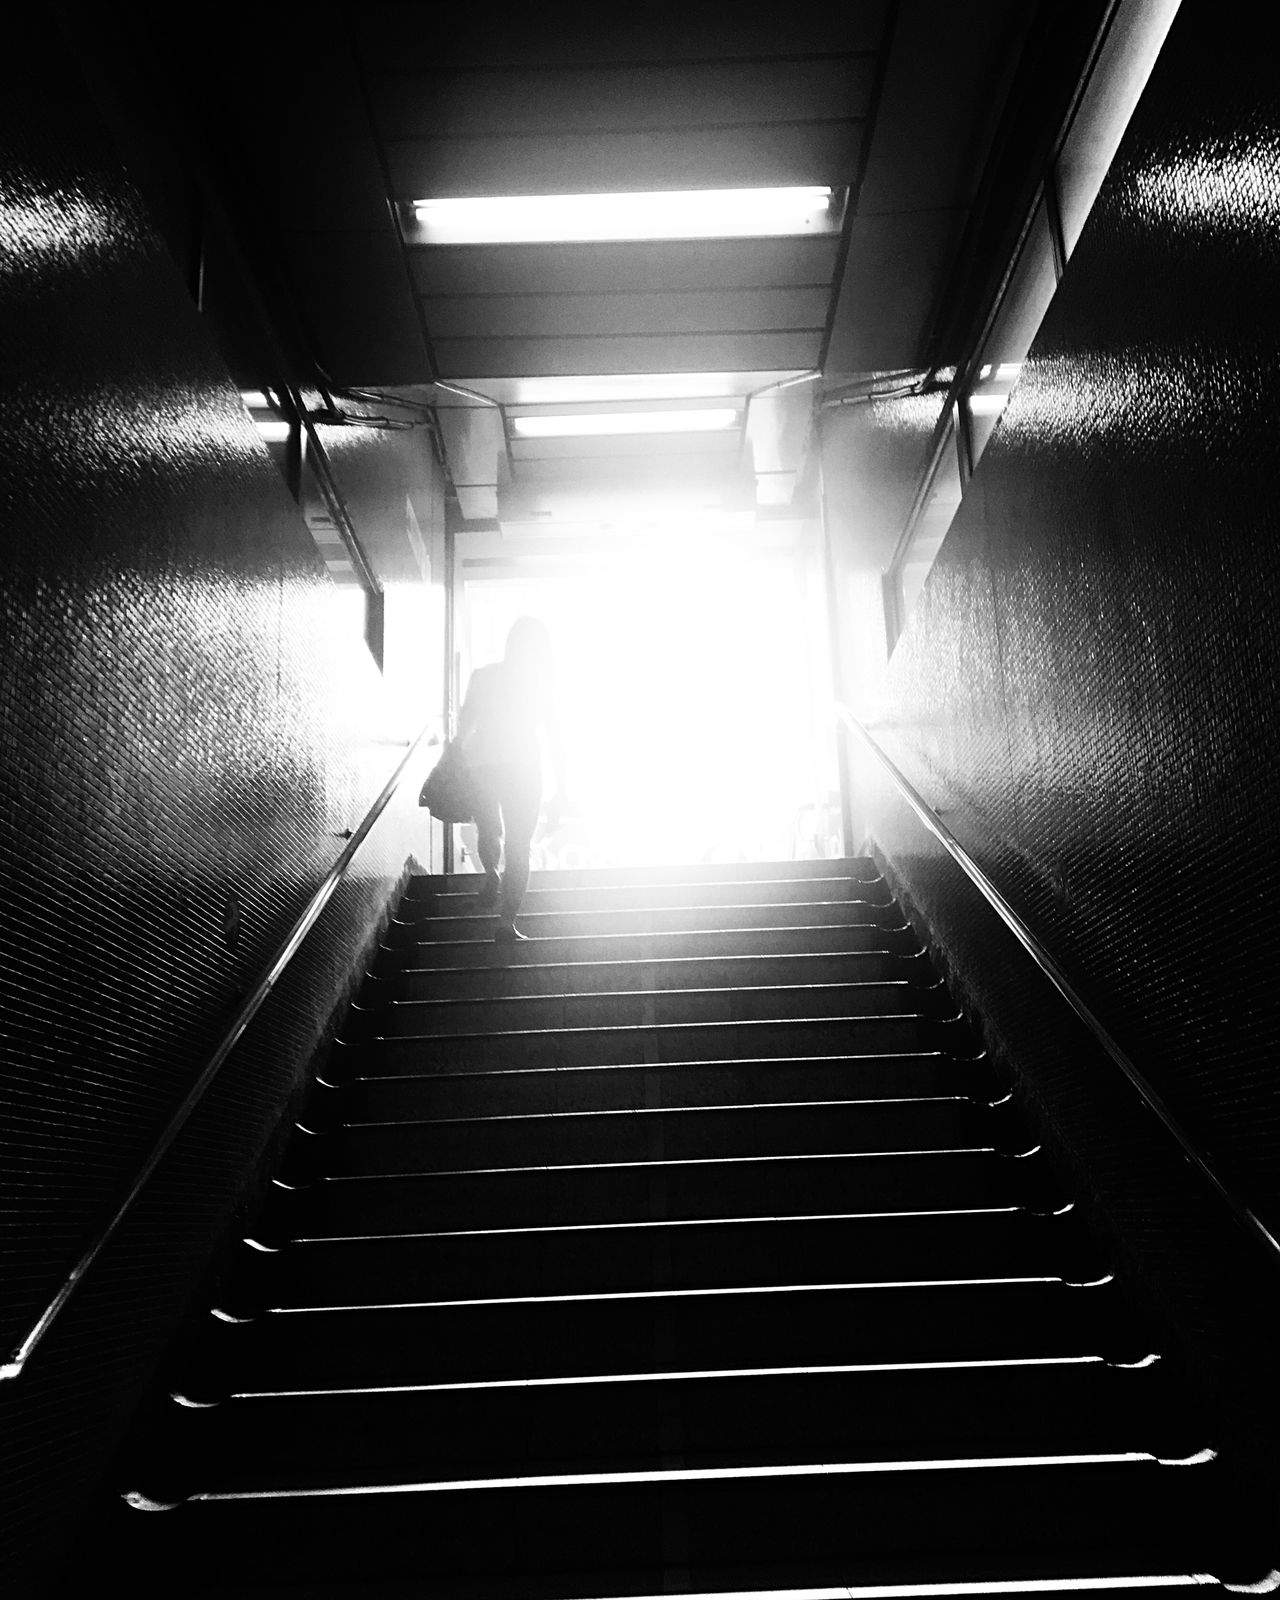 Finding the way out for their life in this city is never a easy task for many people. What is their hope? Hongkong Photos Black & White Hongkongstreet Dailylife First Eyeem Photo